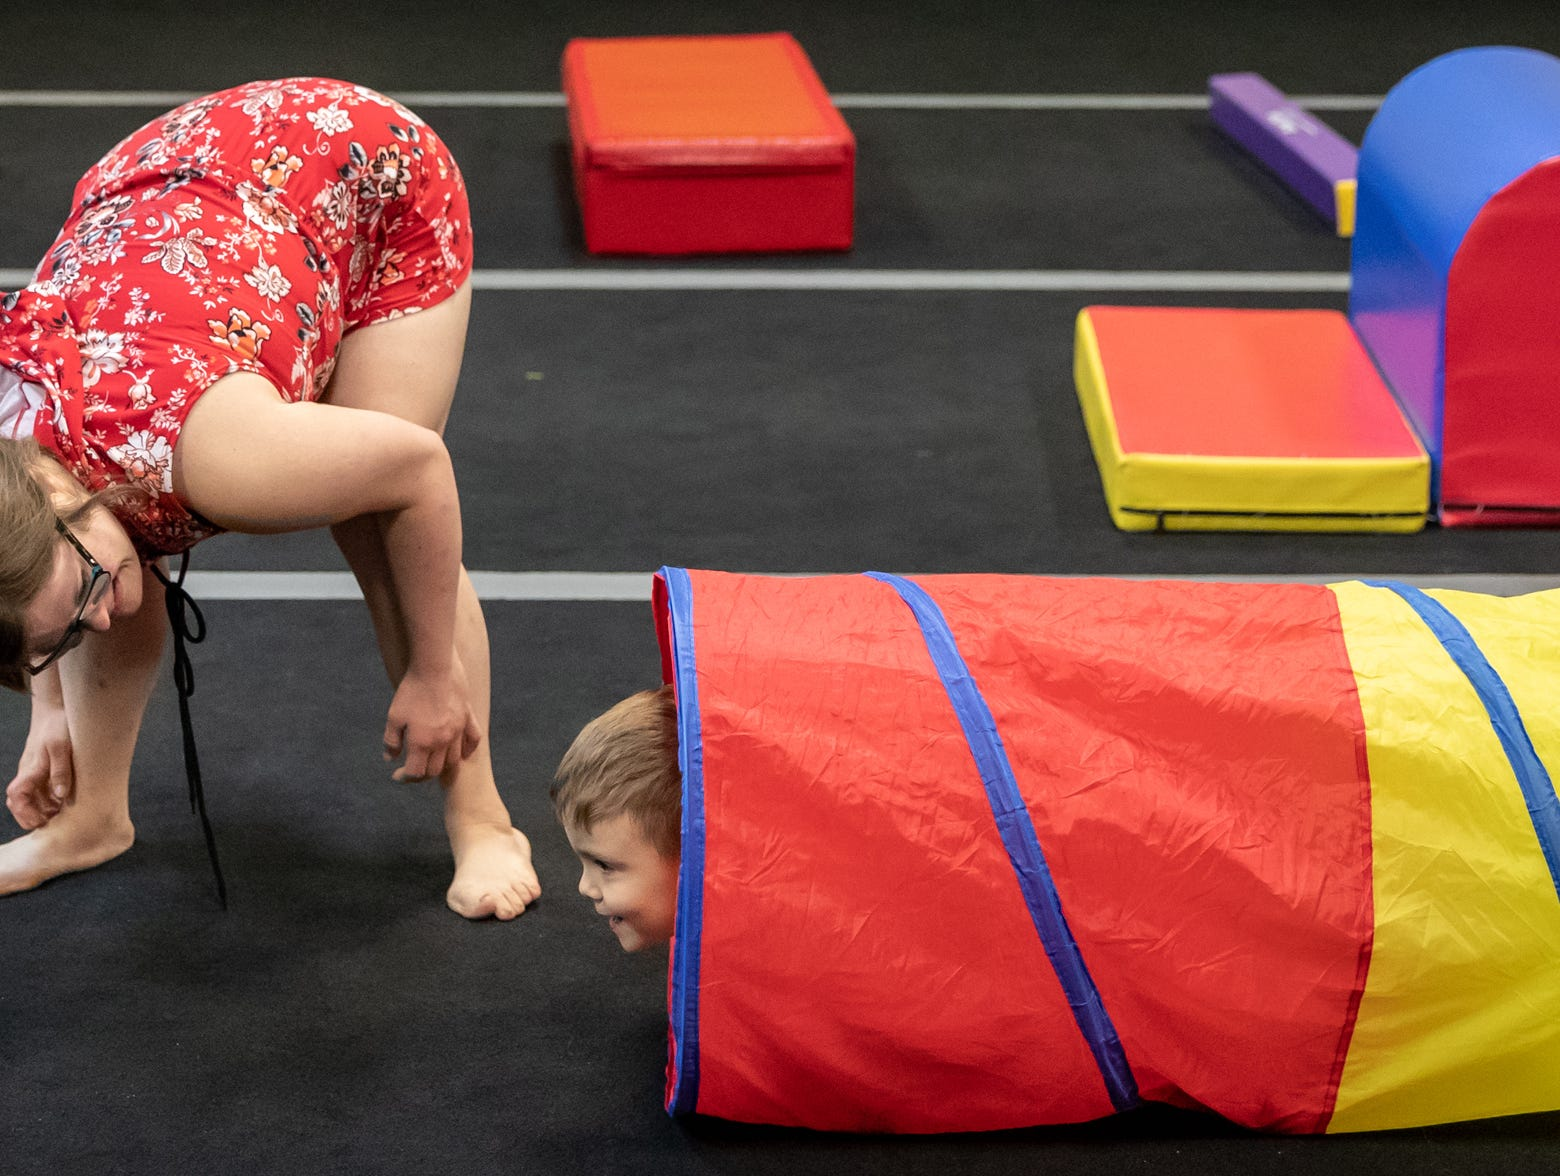 Mickey Deputy waits for student Max Black to exit a tunnel during the obstacle course section of gymnastics class at Style Dance Academy in Franklin, Ind., on Tuesday, Oct. 9, 2018.